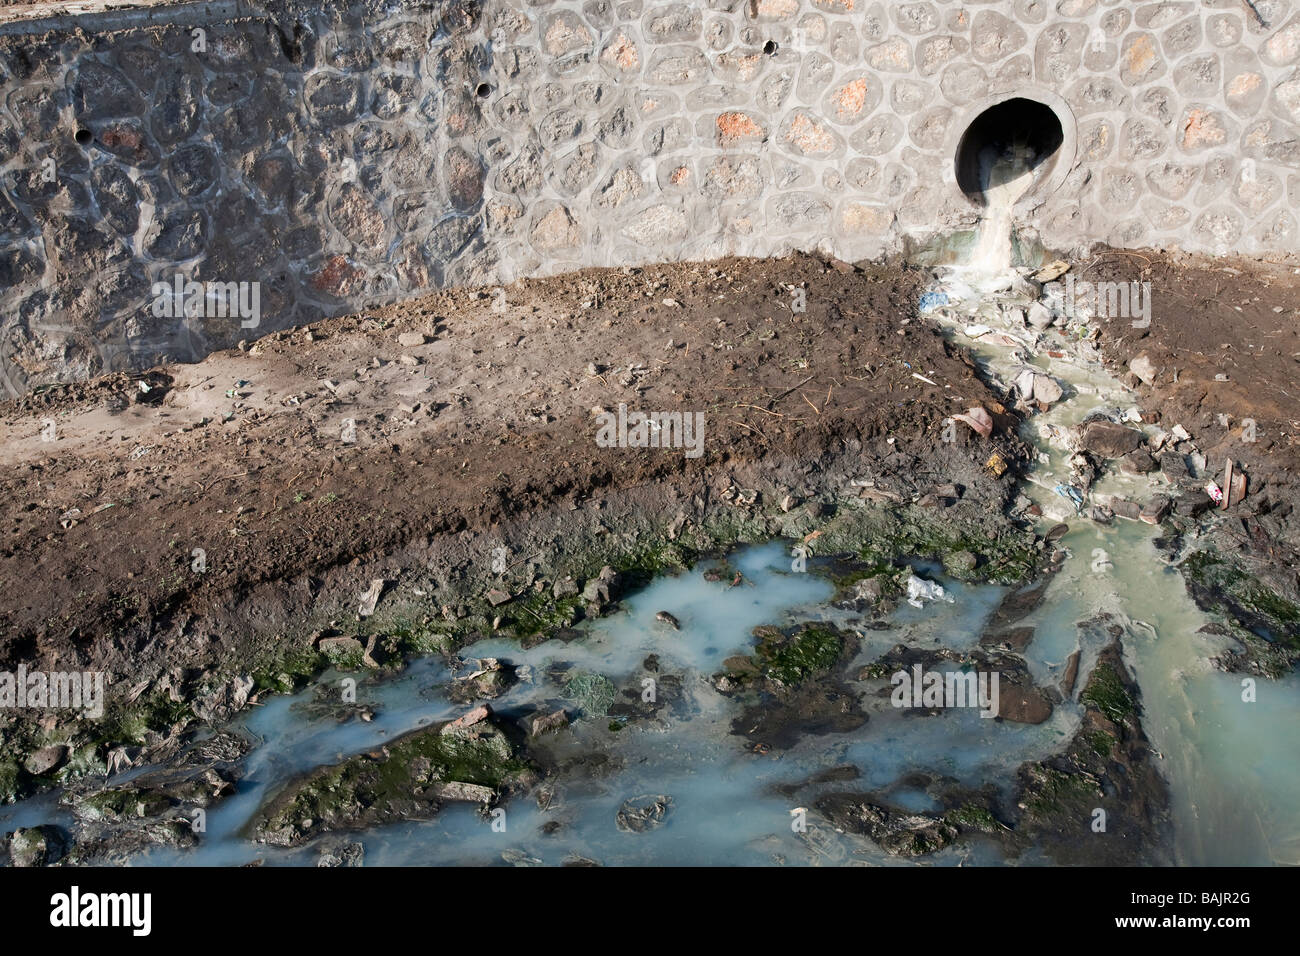 A highly polluted river in Hangang in China - Stock Image